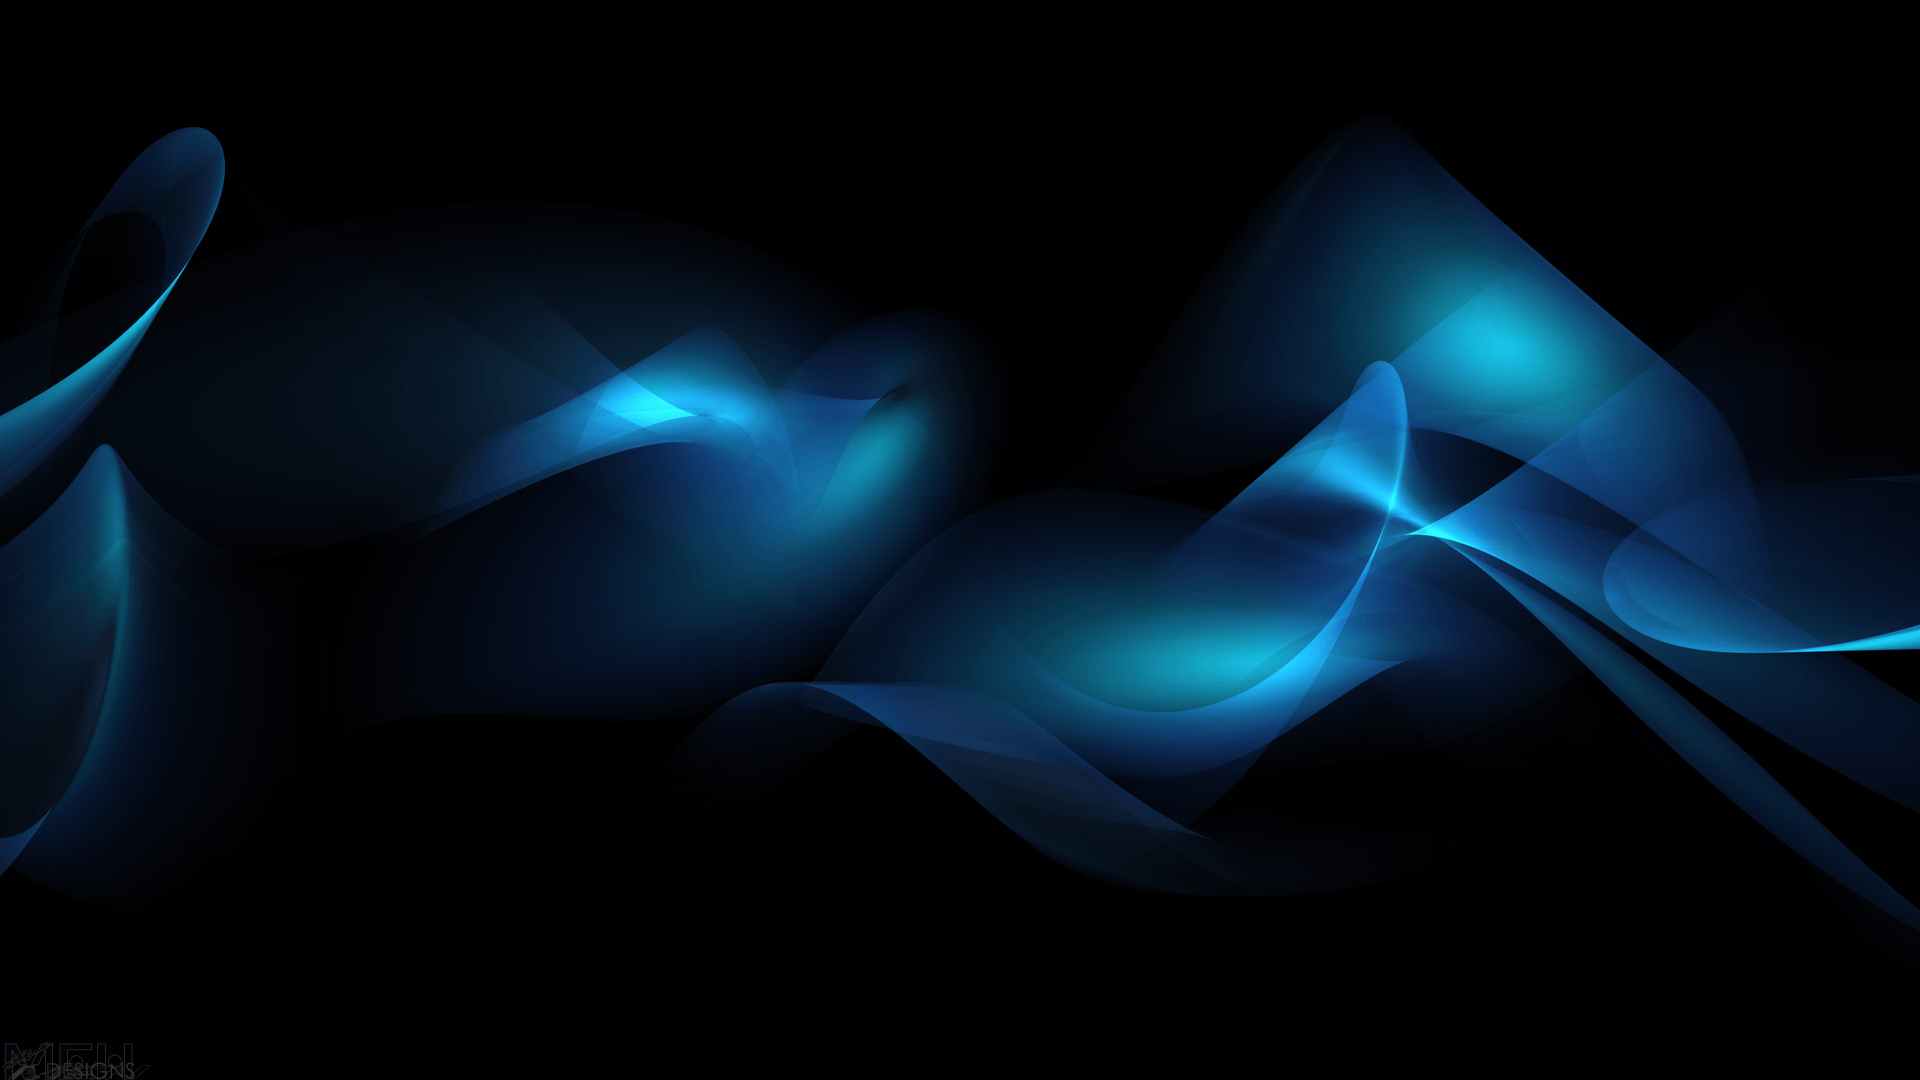 best abstract hd wallpaper 1920x1080 - photo #9